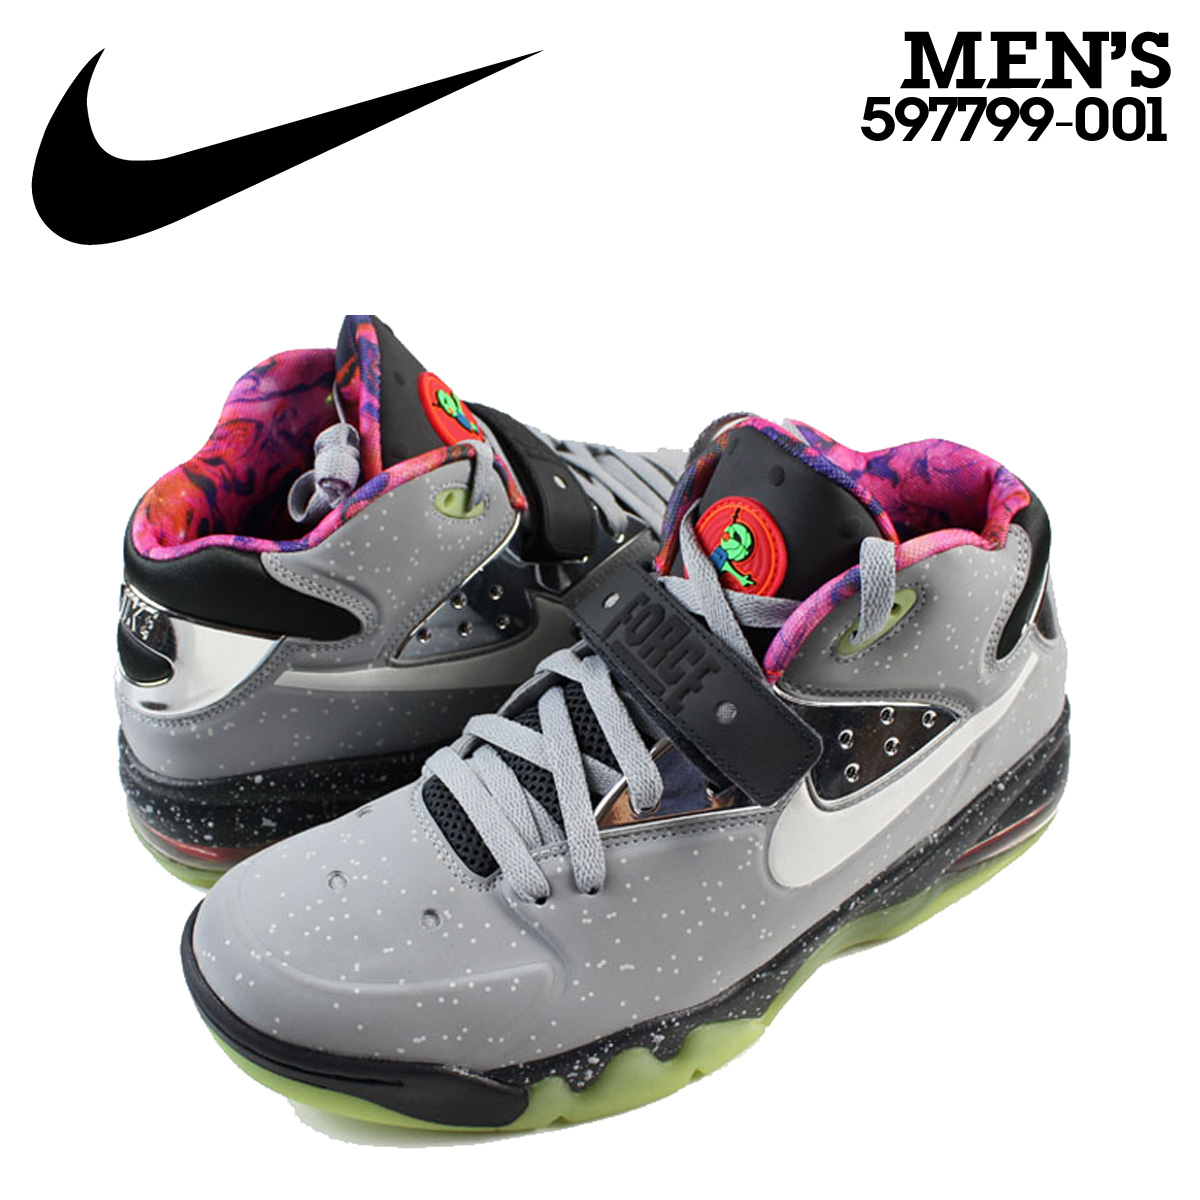 best website daa8c 52a04 Nike NIKE air force sneakers AIR FORCE MAX 2013 PRM QS air force max ALLSTAR  memory model 597,799-001 gray men